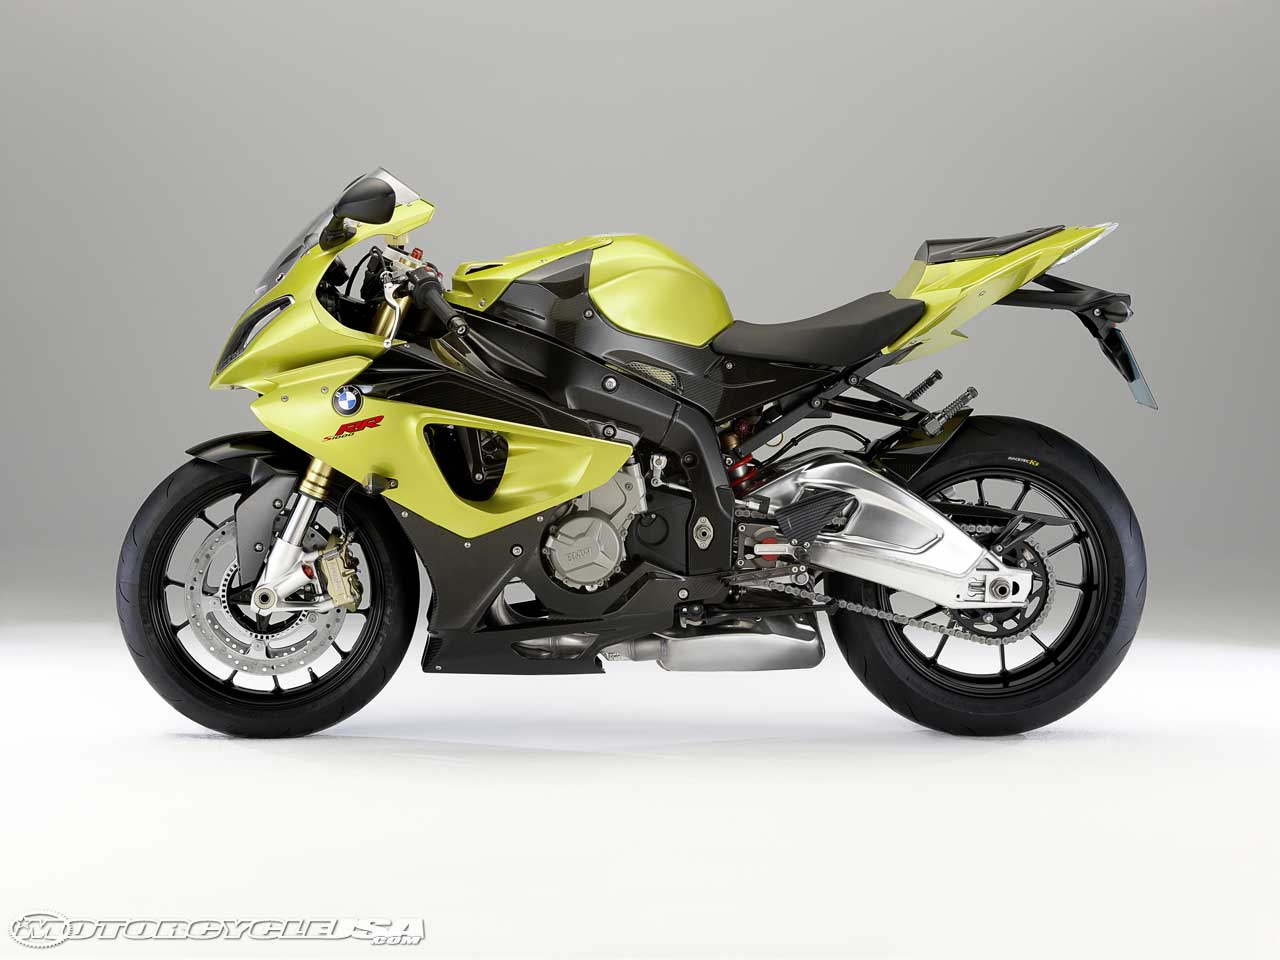 BMW S 1000 RR ABS images #8970